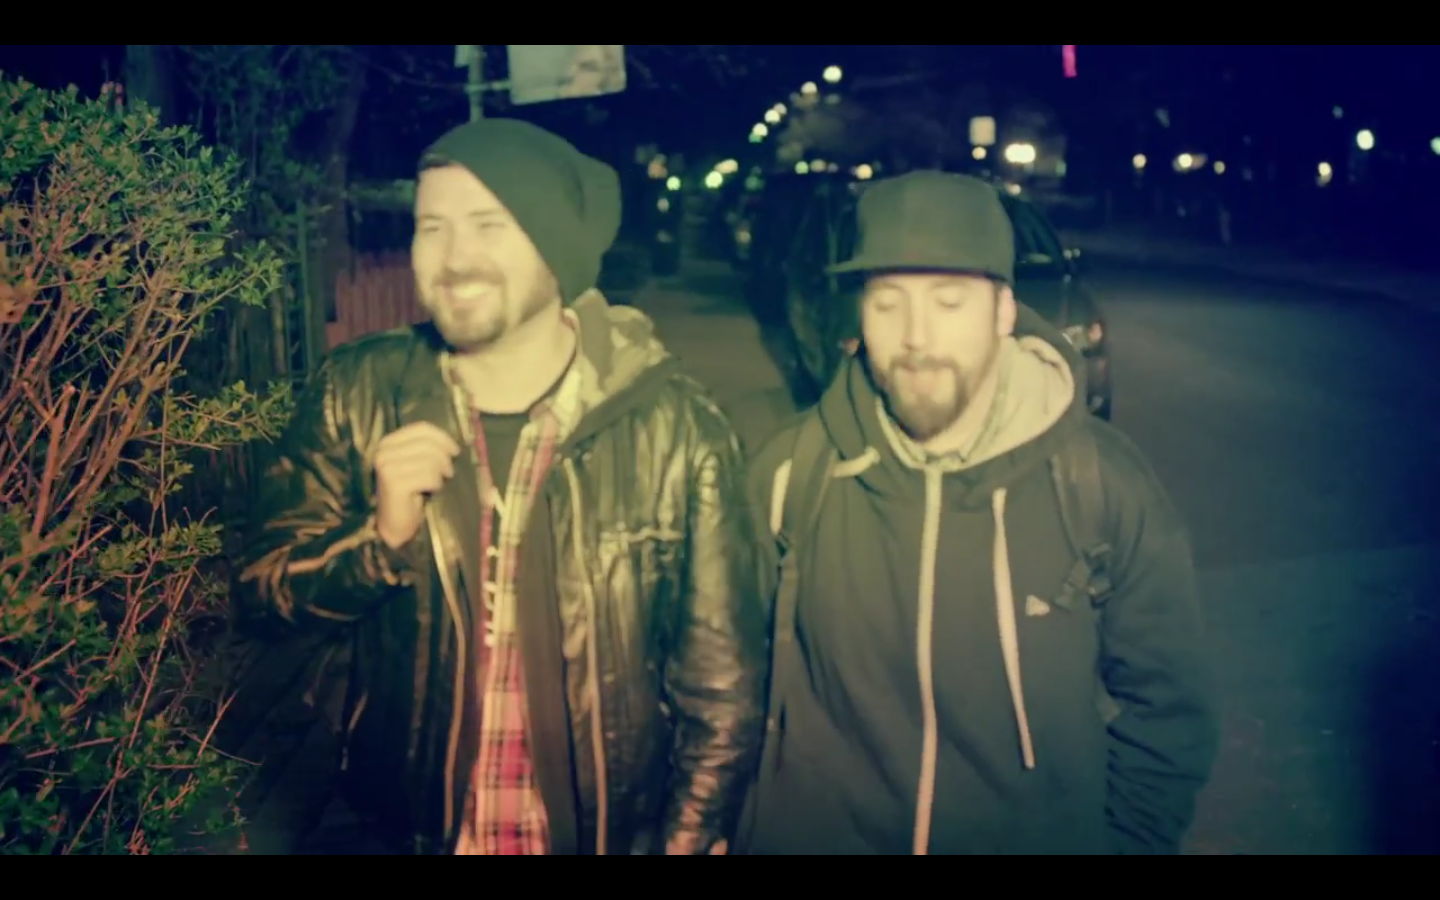 Video: The Extremities – Dial Tones (ft. Ghettosocks, Lushlife & Ambition)